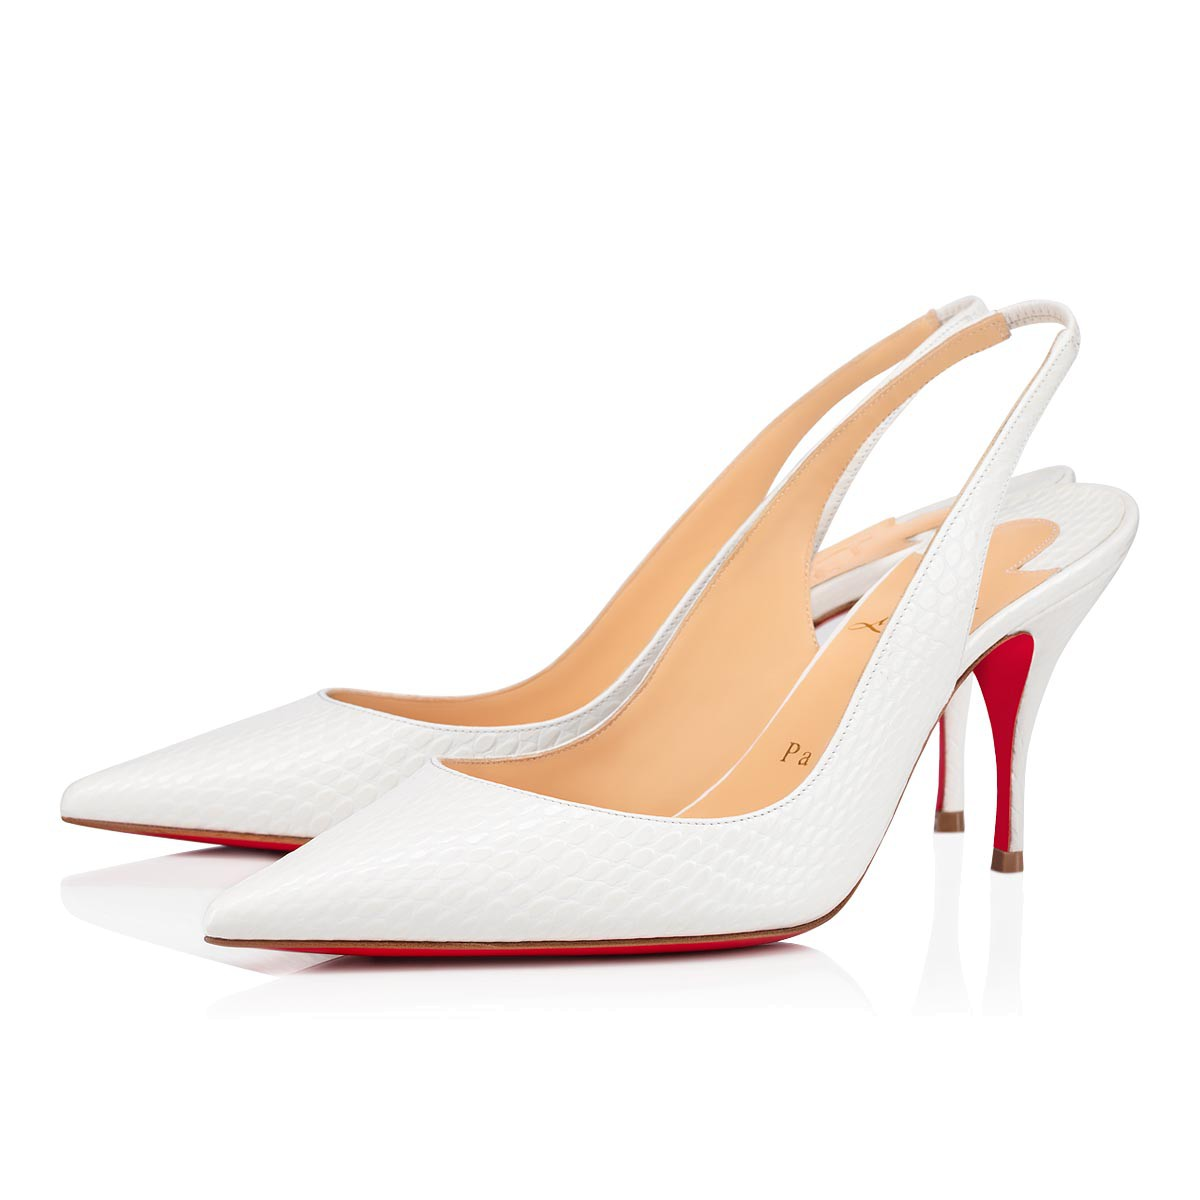 Shoes - Clare Sling - Christian Louboutin